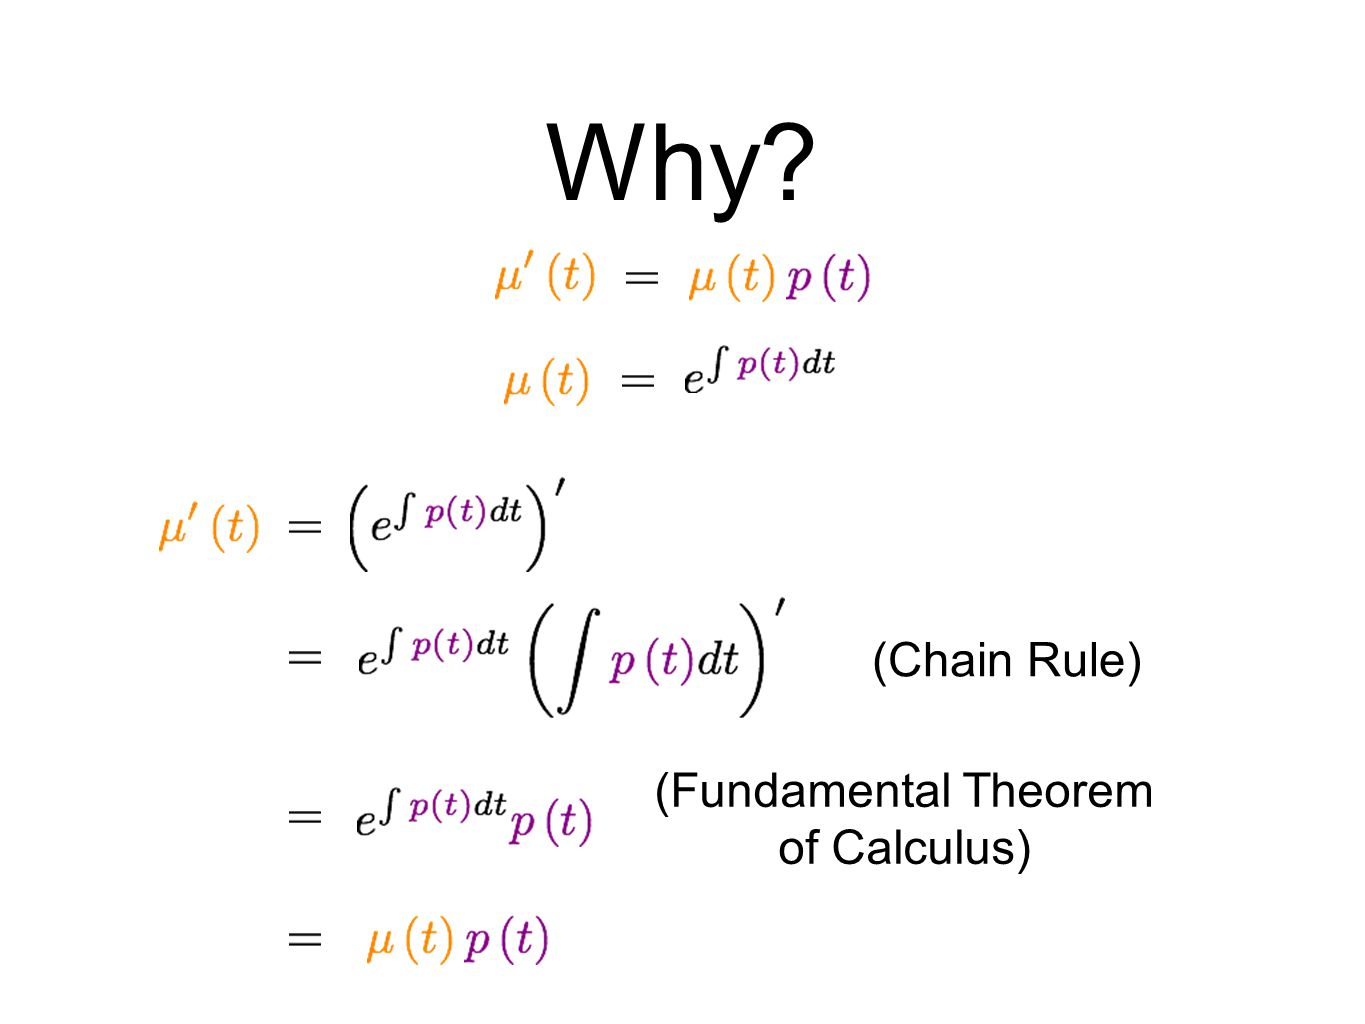 Why (Chain Rule) (Fundamental Theorem of Calculus)